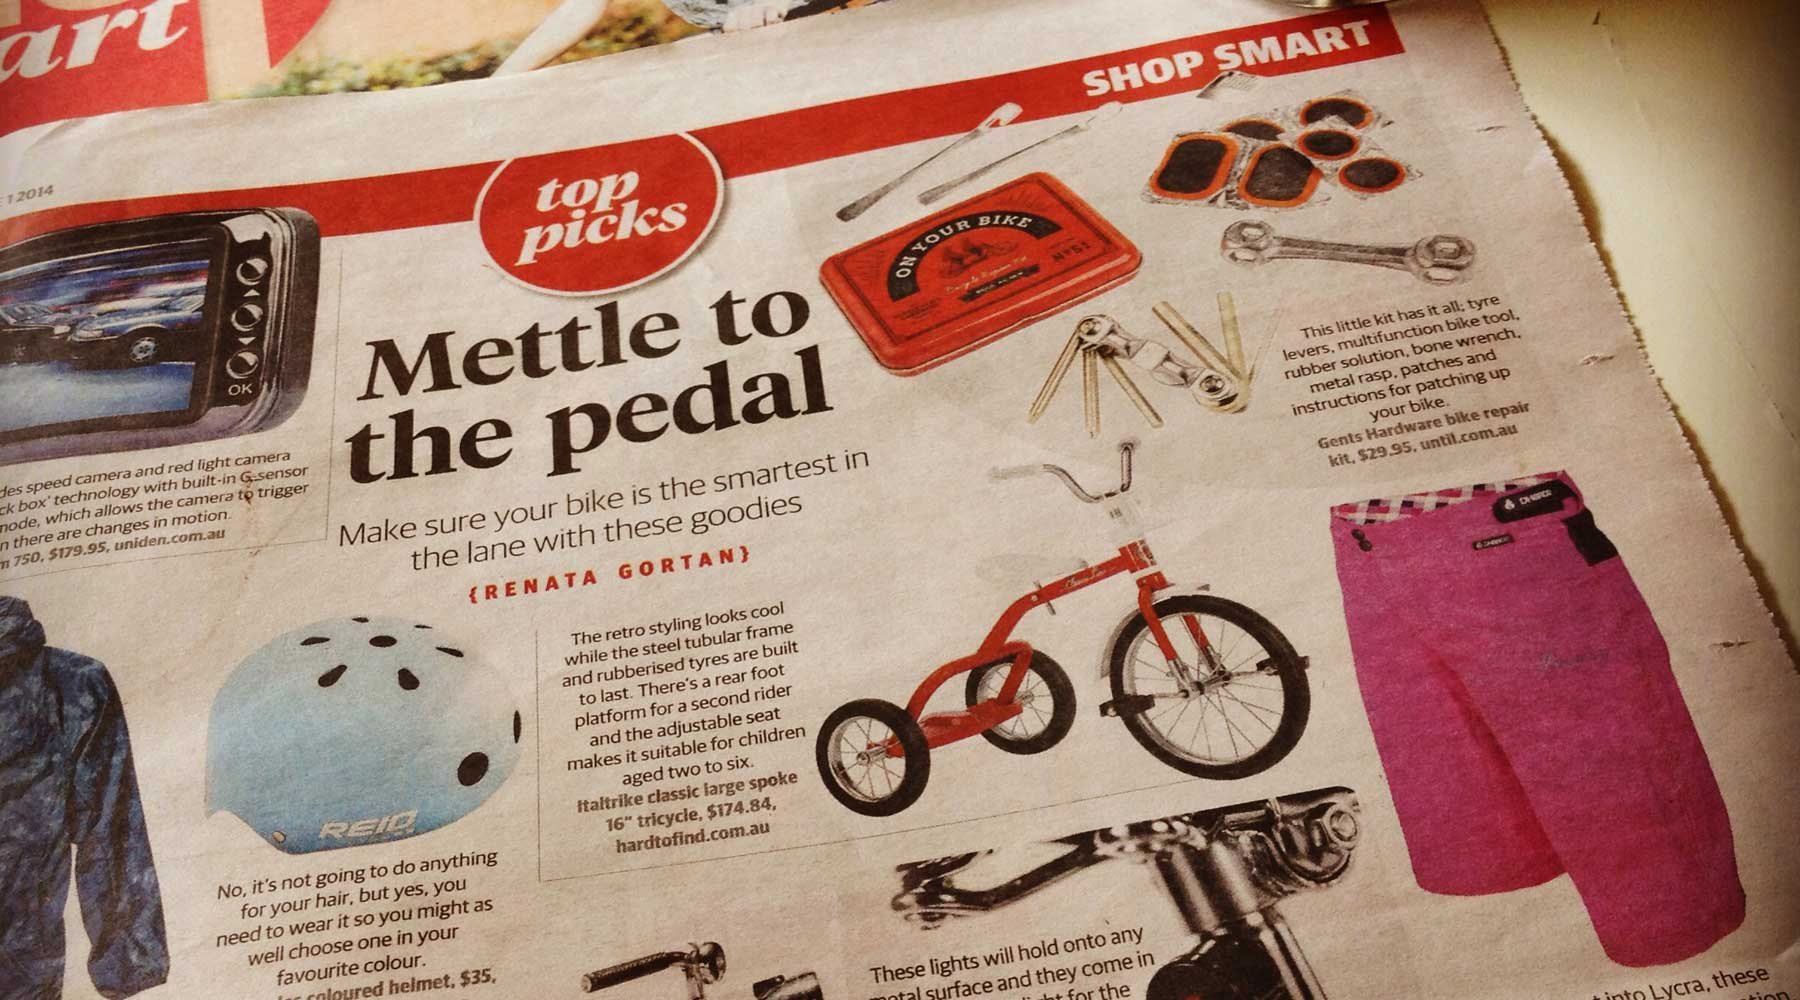 Sunday Telegraph features DHaRCO in Shop Smart